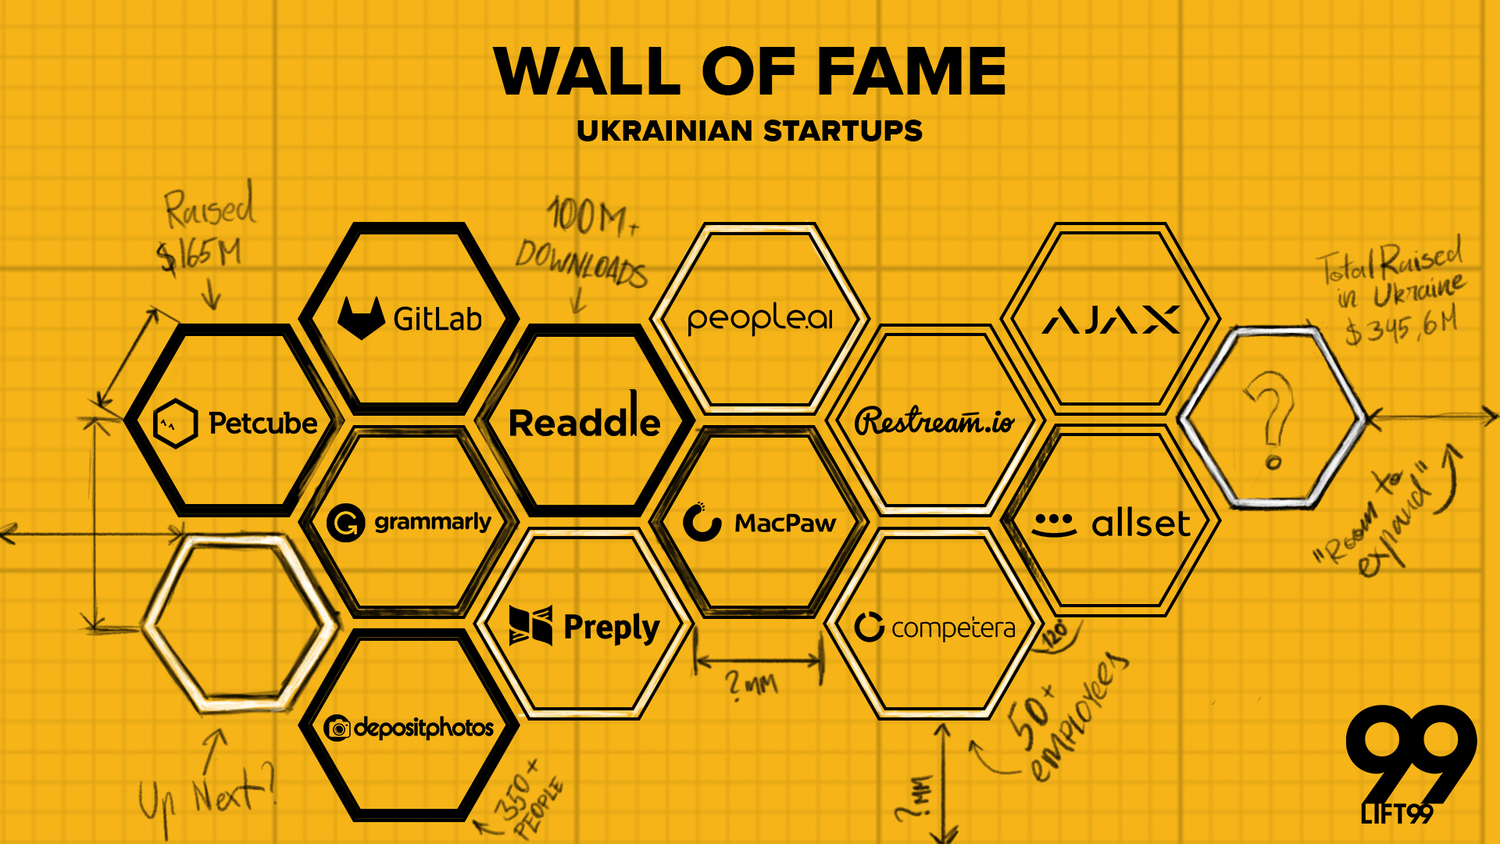 Announcing Startup Wall Of Fame Ukraine Lift99